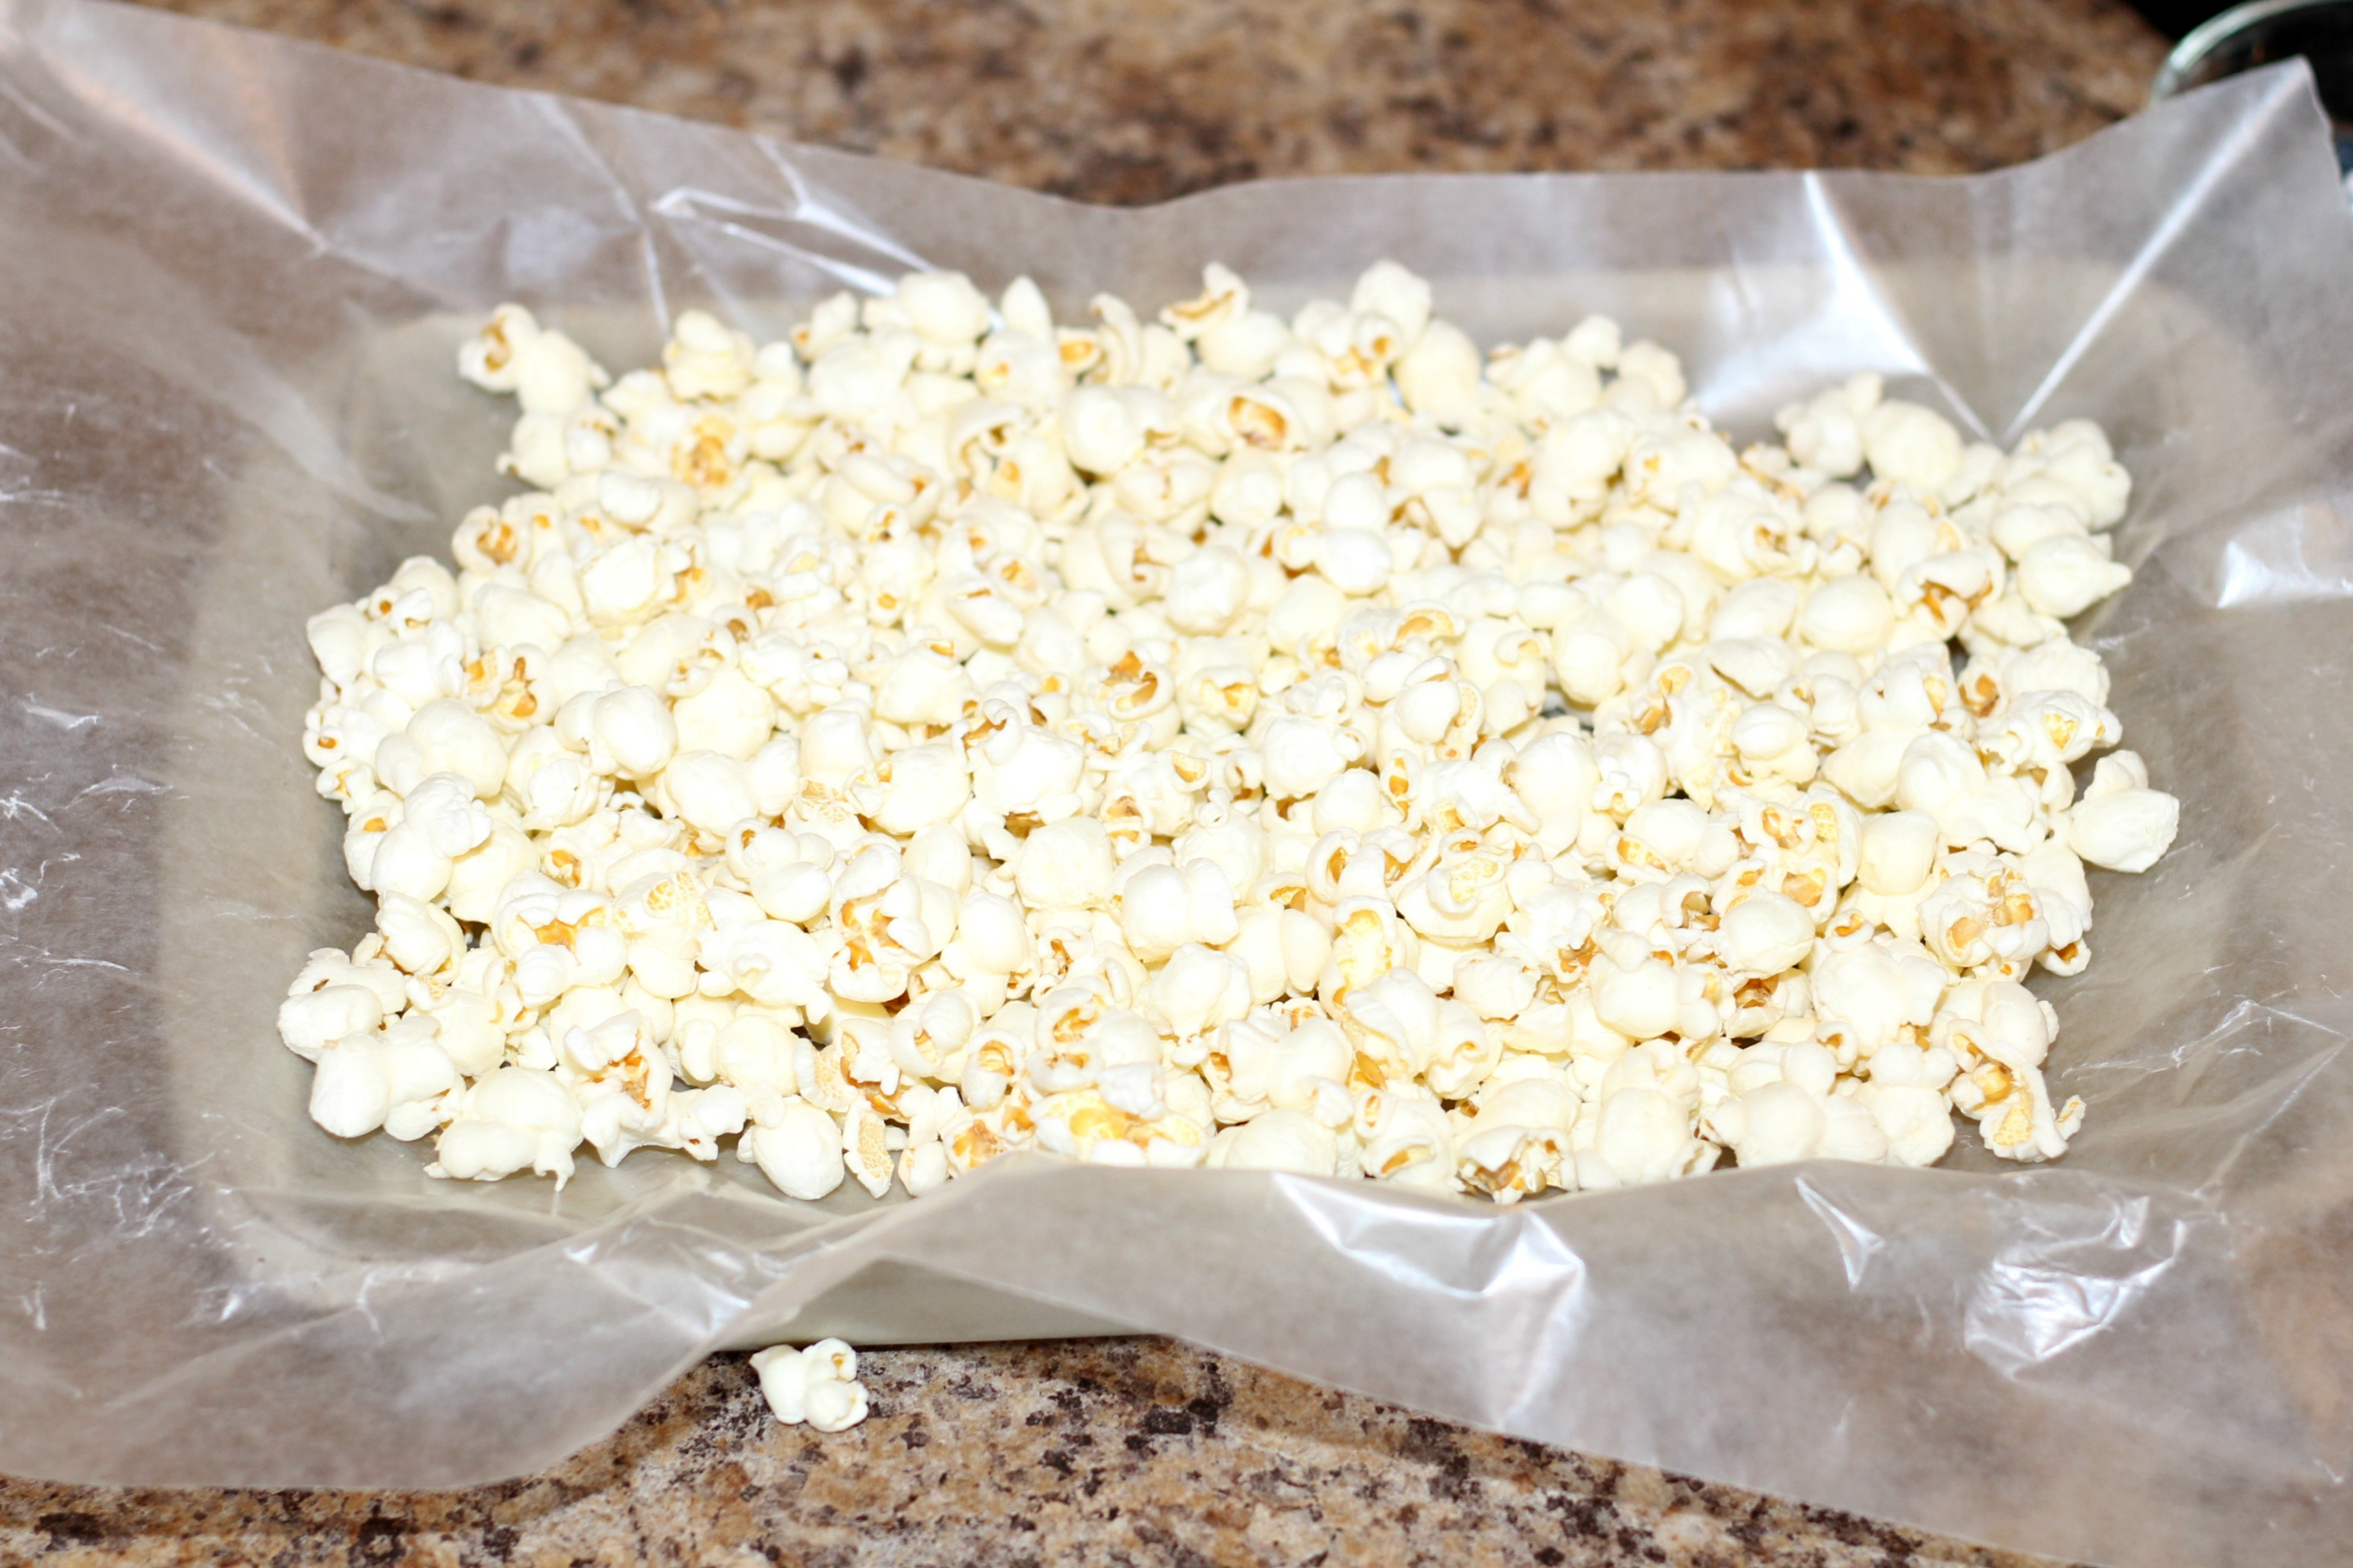 Rogue One Inspired Popcorn Recipe